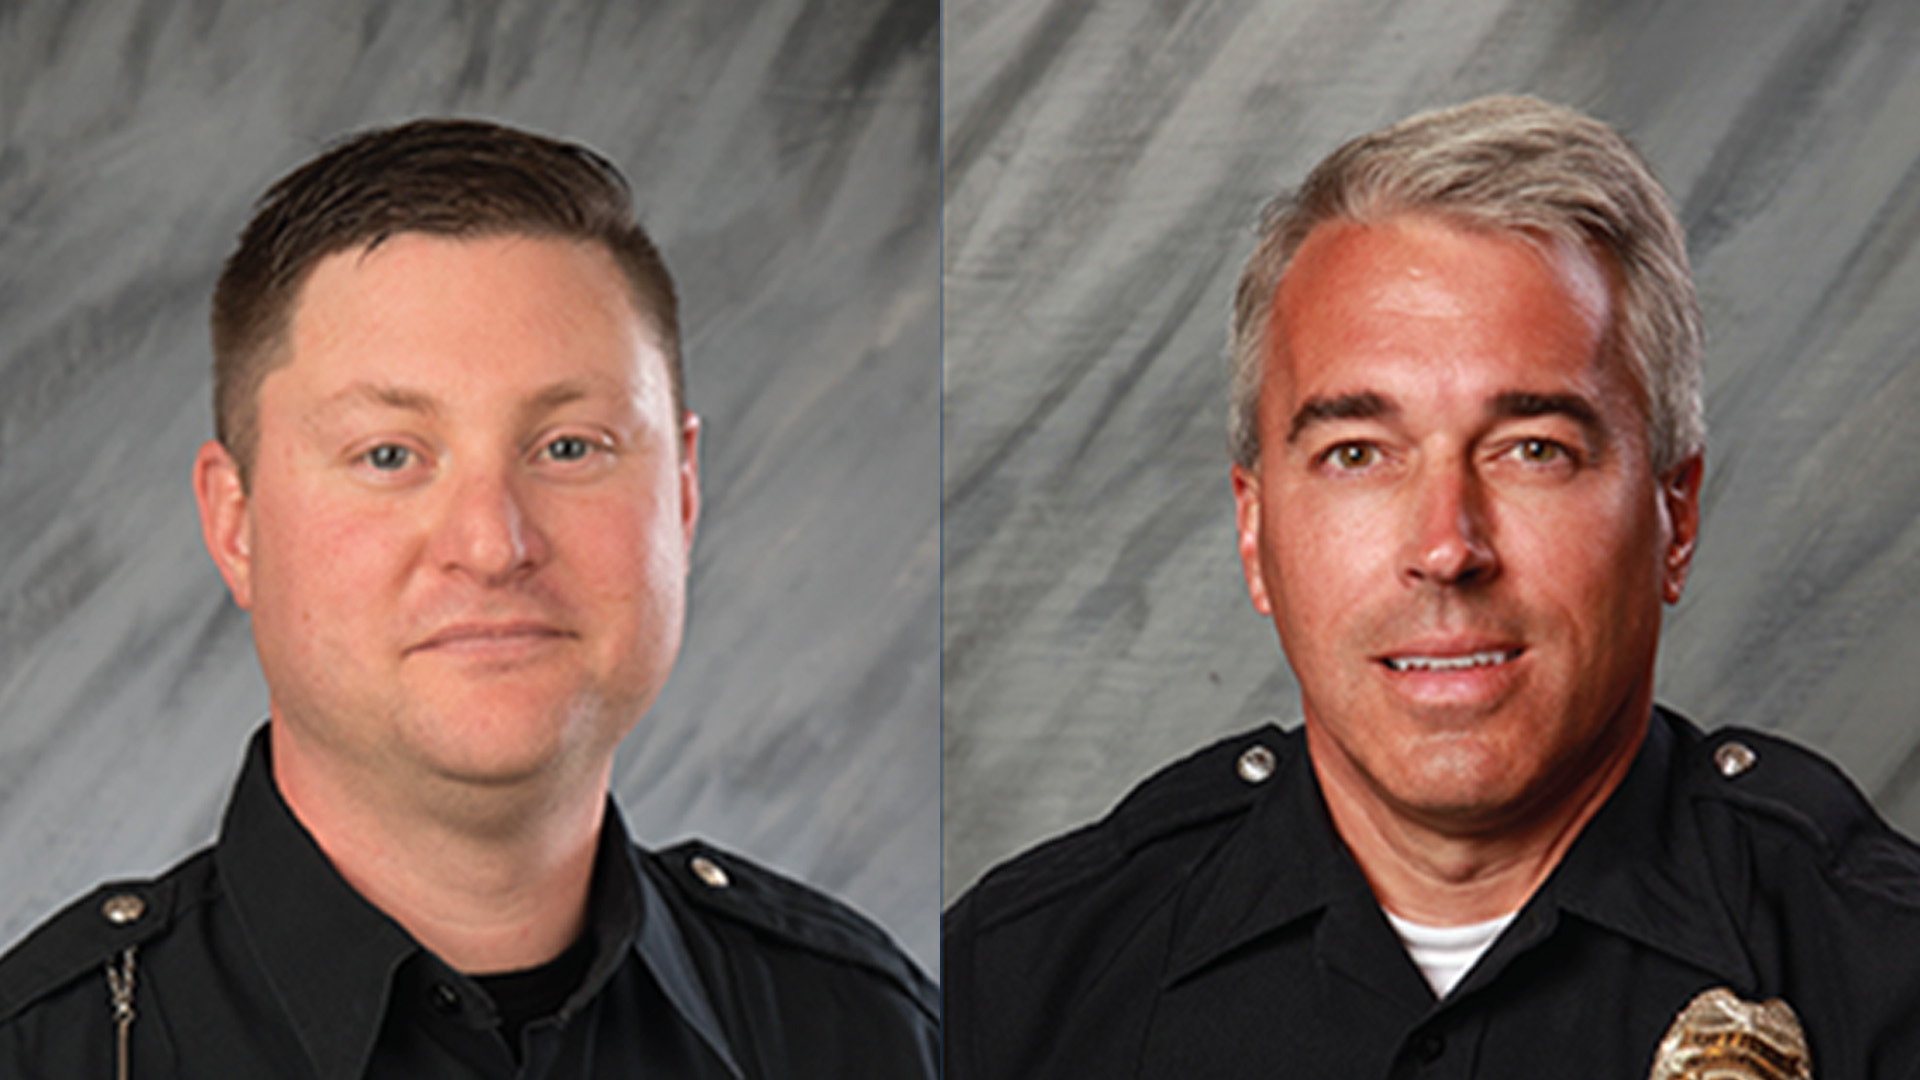 Officers Eric Joering and Anthony Morelli are seen in these photos posted on Twitter by the city of Westerville, Ohio on Feb. 11, 2018.